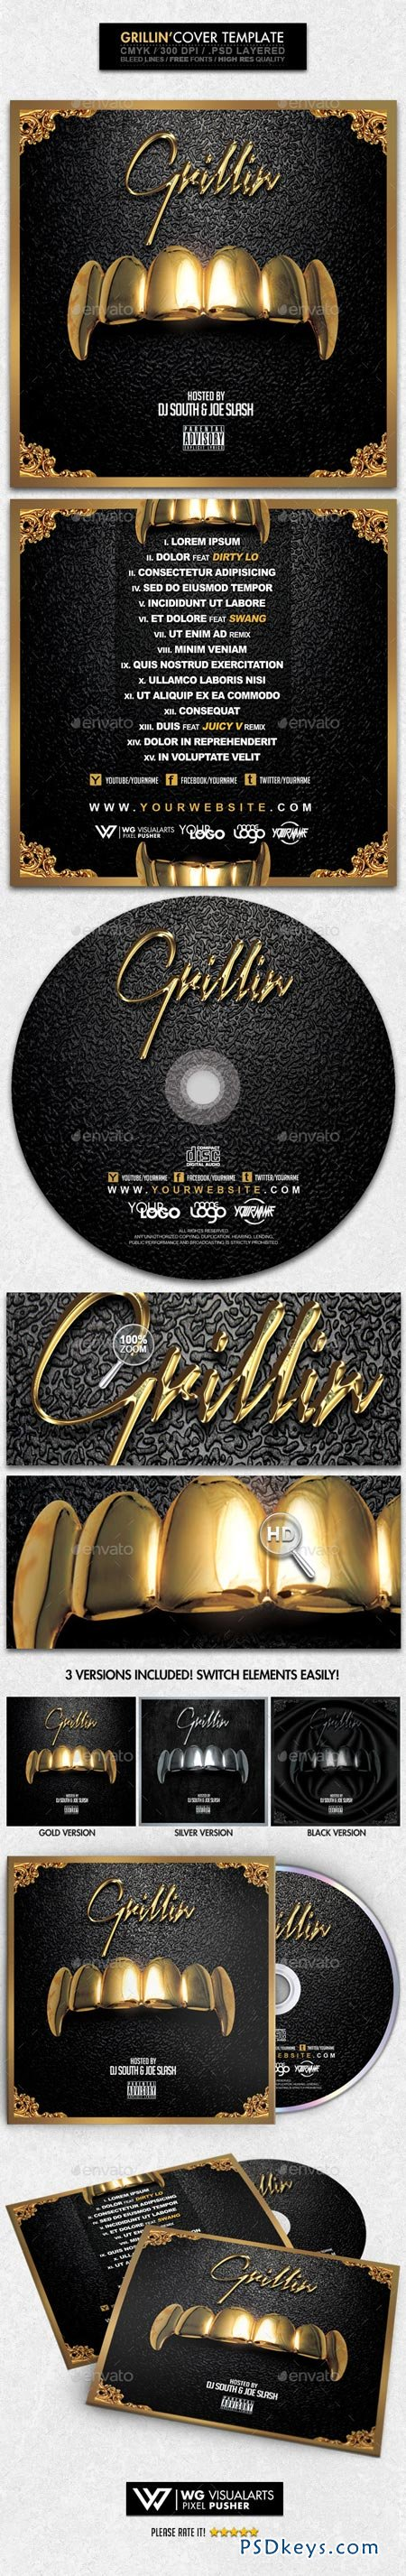 Grillin PSD CD Mixtape Cover Template 8943074 Free Download – Psd Album Cover Template